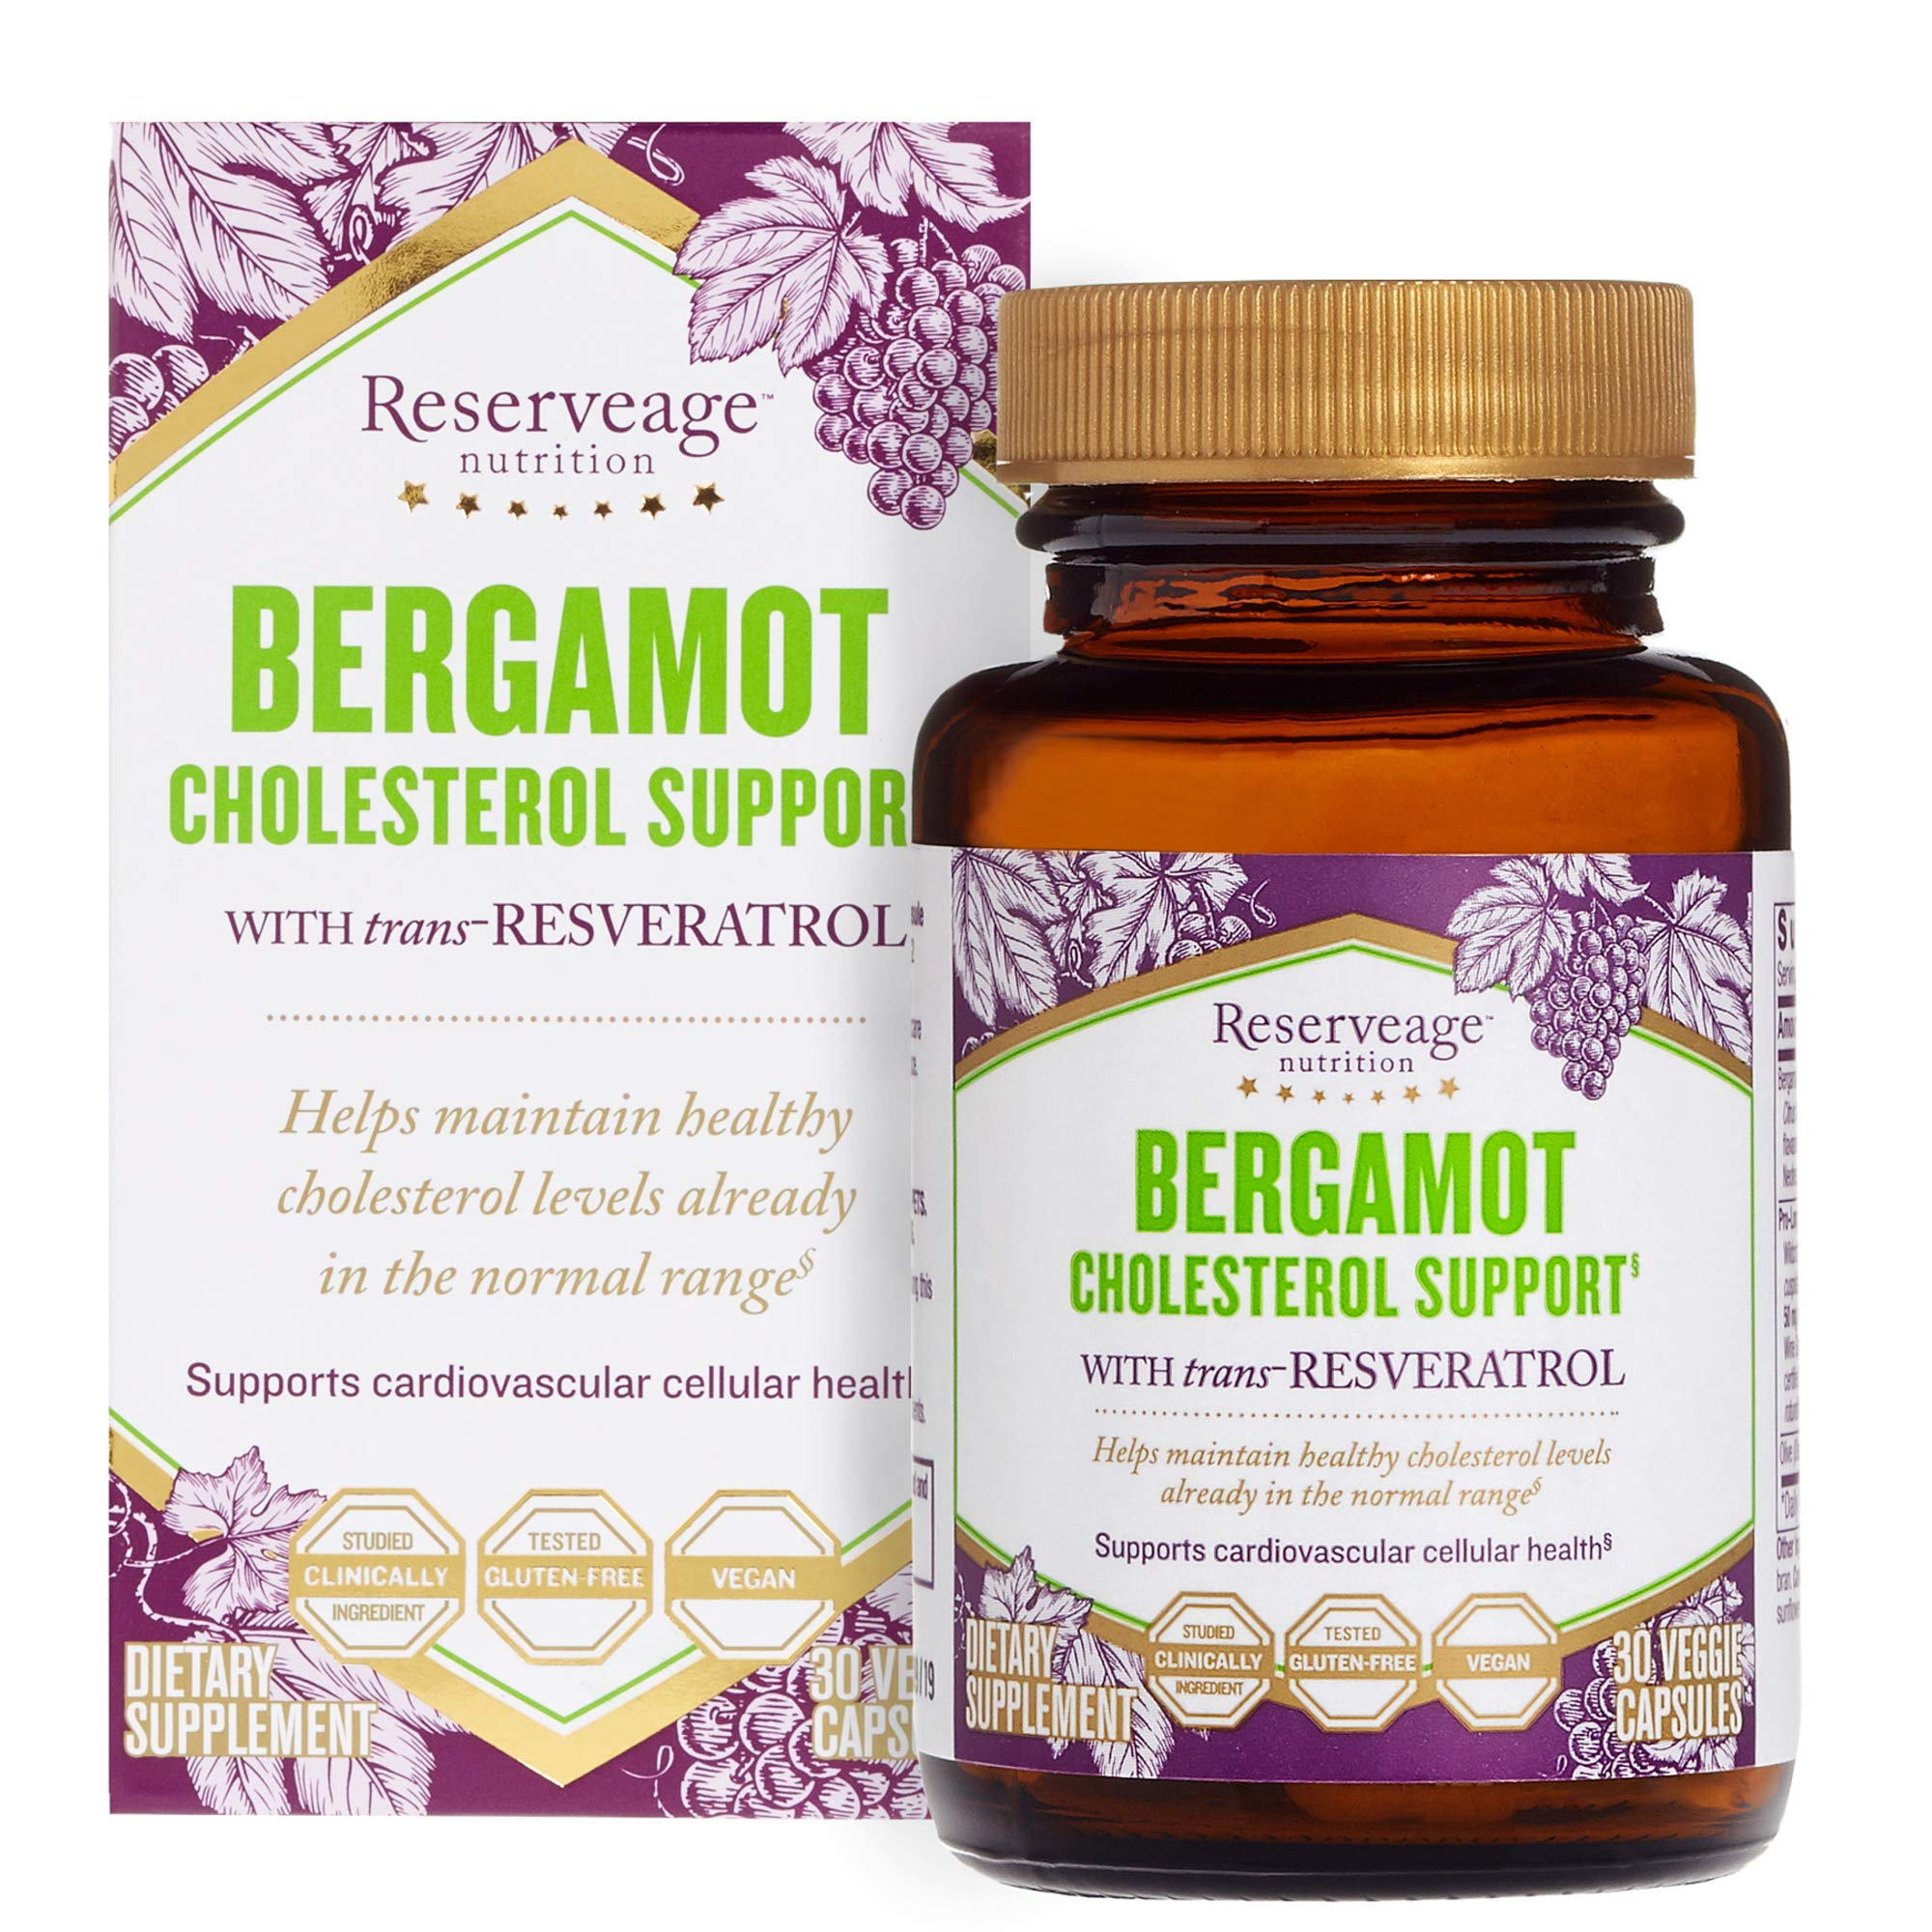 Reserveage - Bergamot Cholesterol Support, Helps Maintain Balanced Cholesterol Levels to Aid Heart and Cardiovascular Health with Bergamot, Resveratrol, and Olive Leaf, Gluten Free, Vegan, 30 Capsules by Reserveage Nutrition